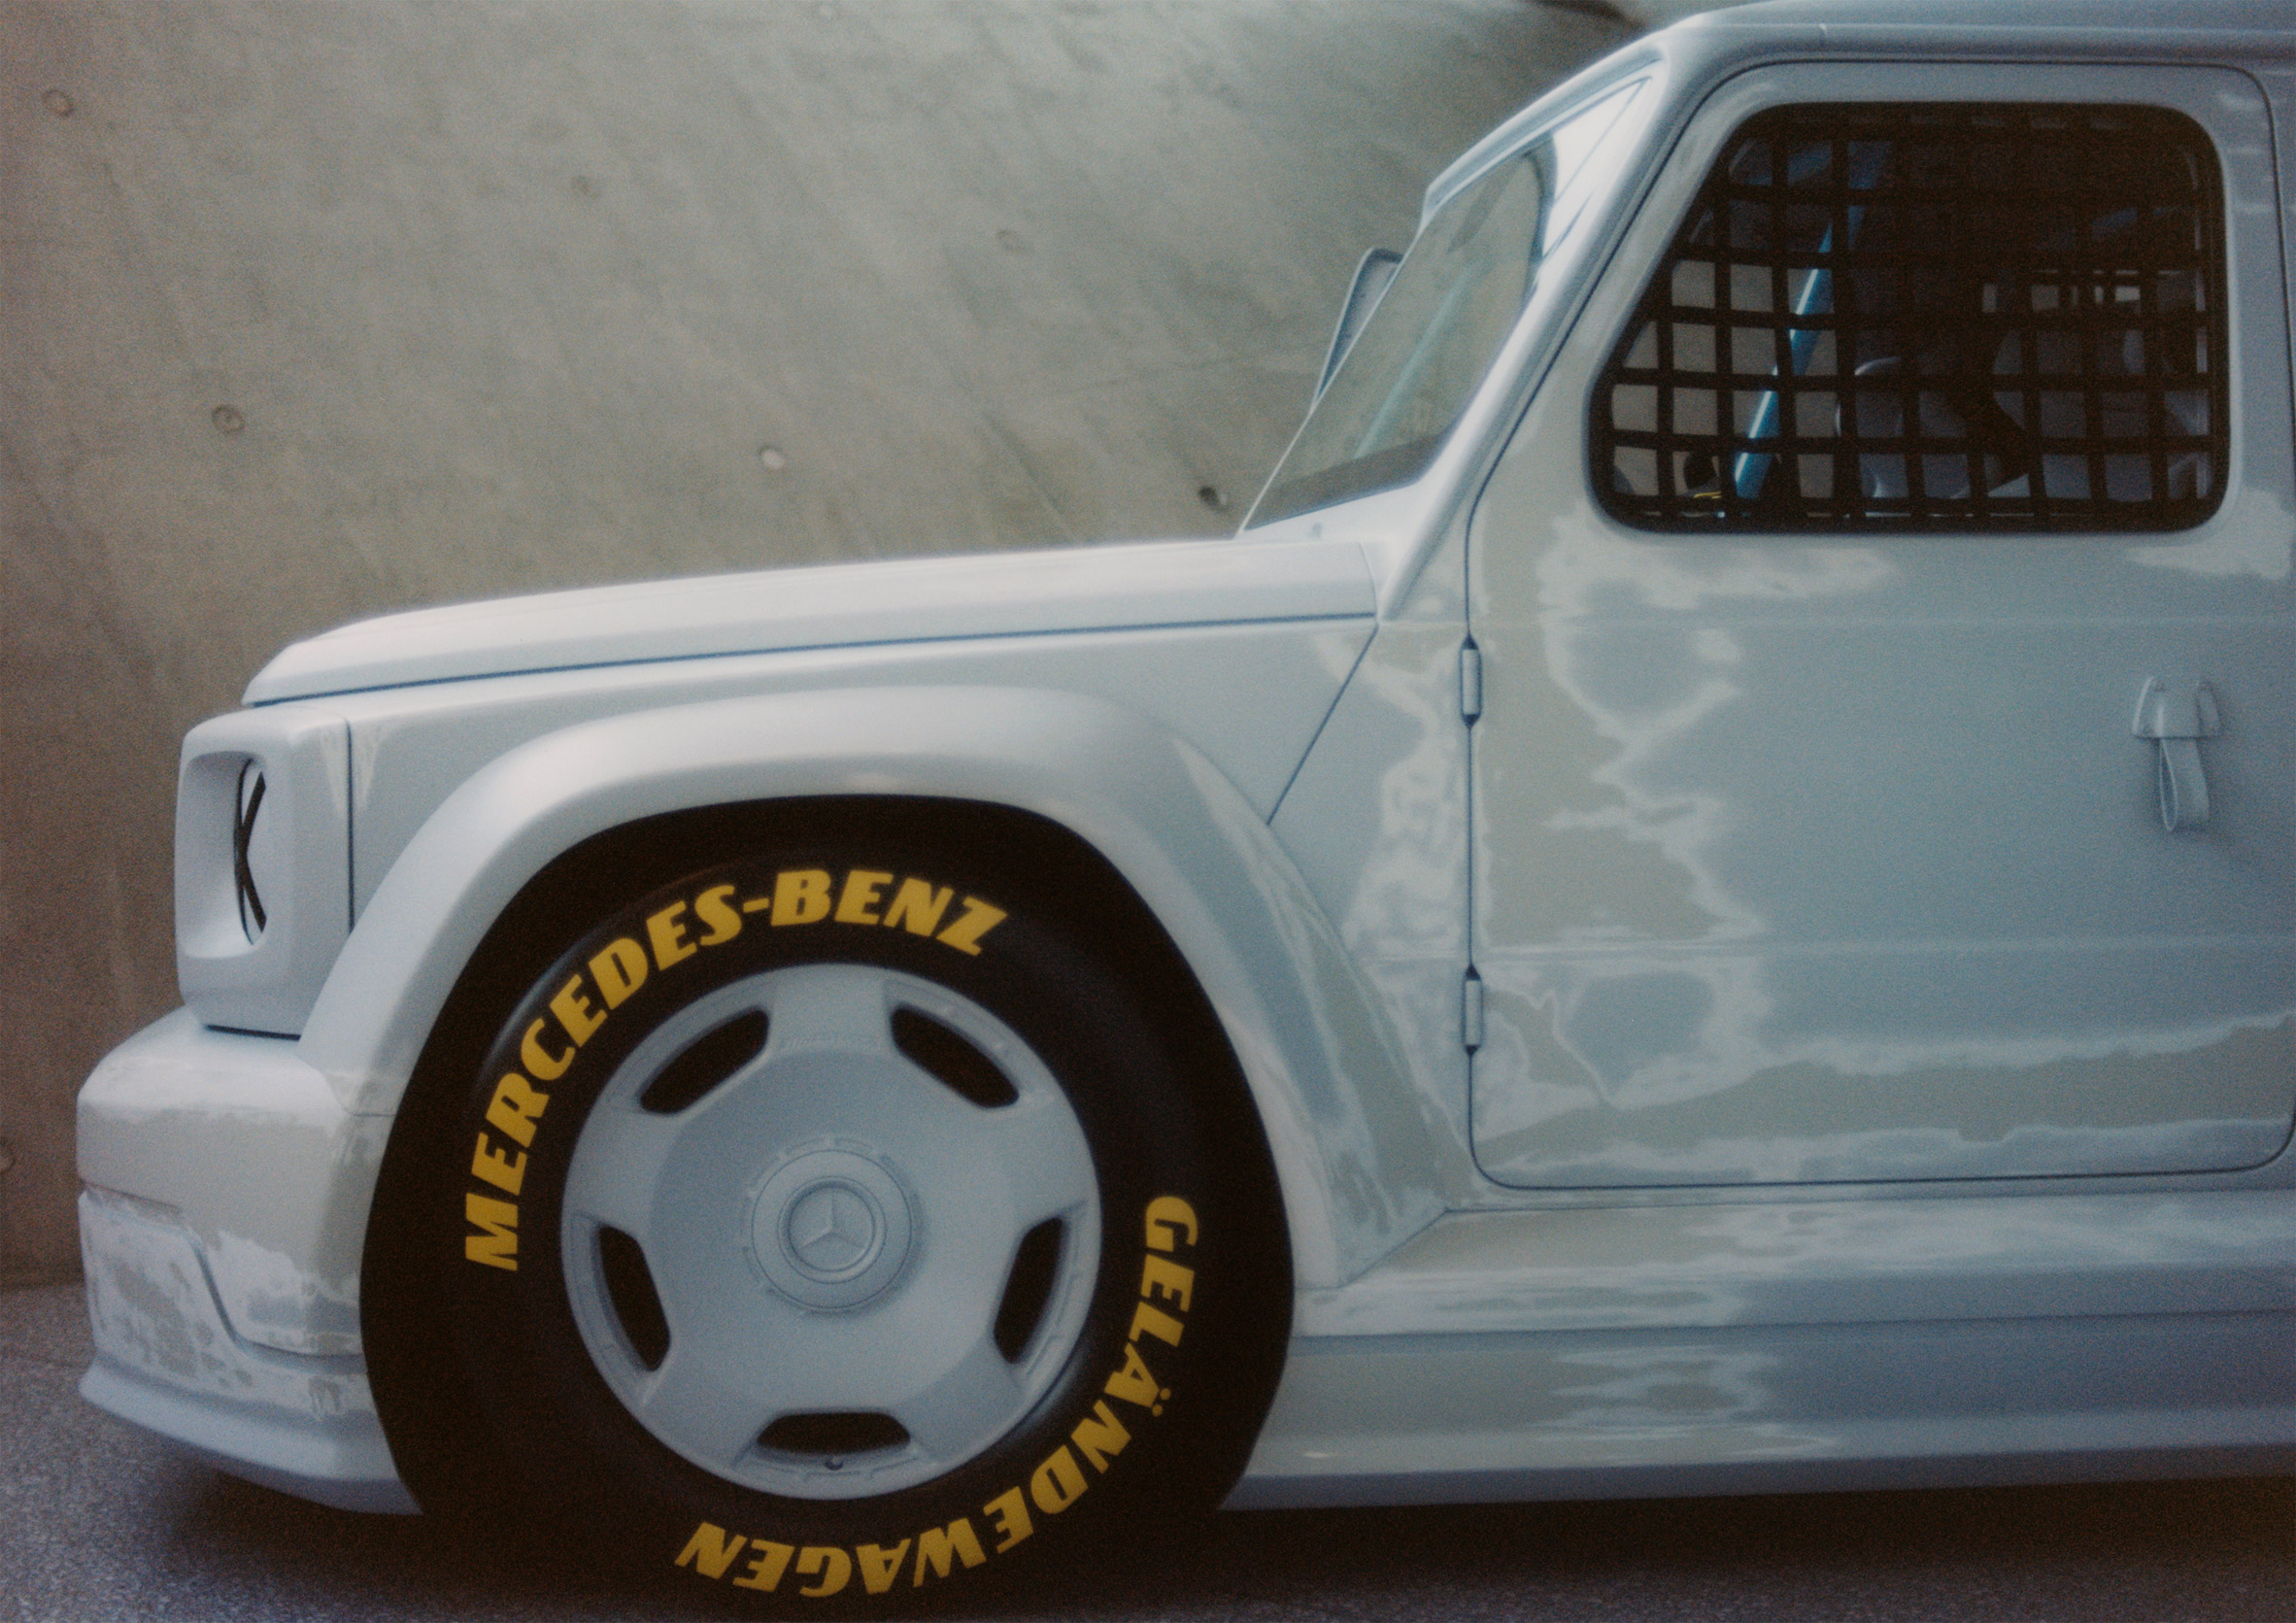 Exterior and wheel of Project Geländewagen car by Virgil Abloh and Mercedes Benz